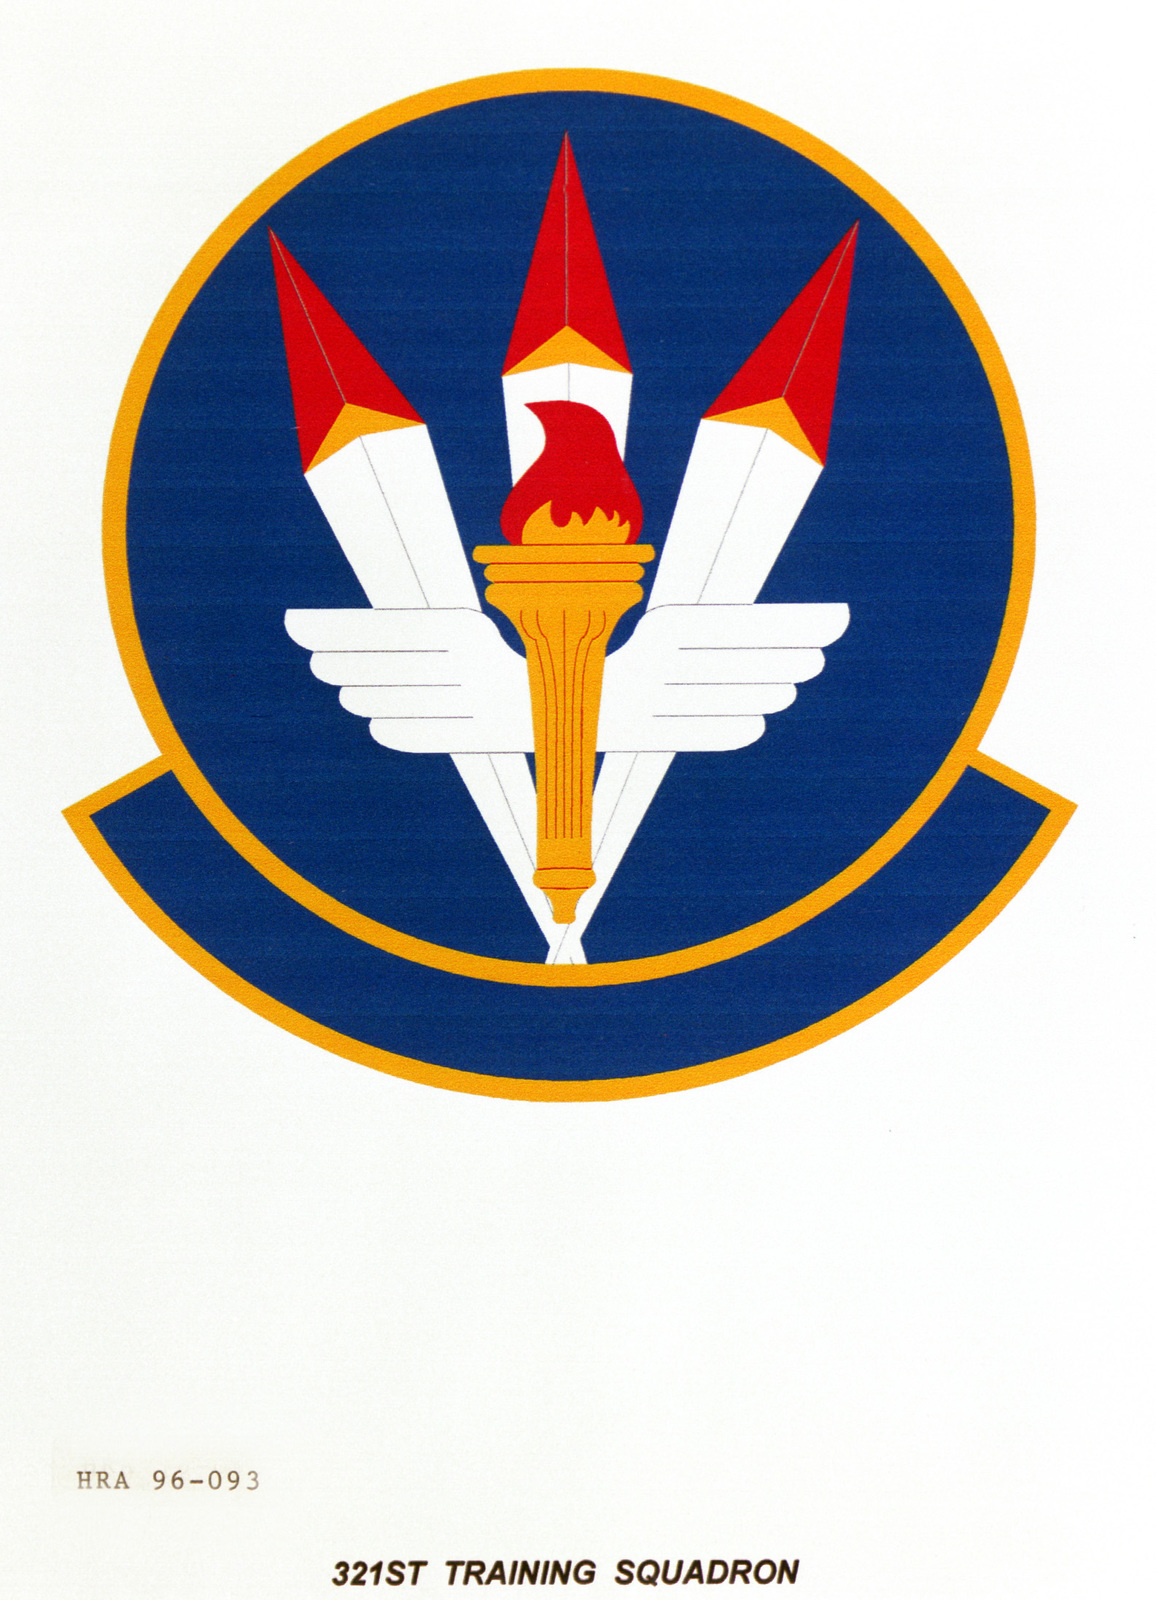 Air Force Organizational Emblem. 321st Training Squadron Exact Date Shot Unknown